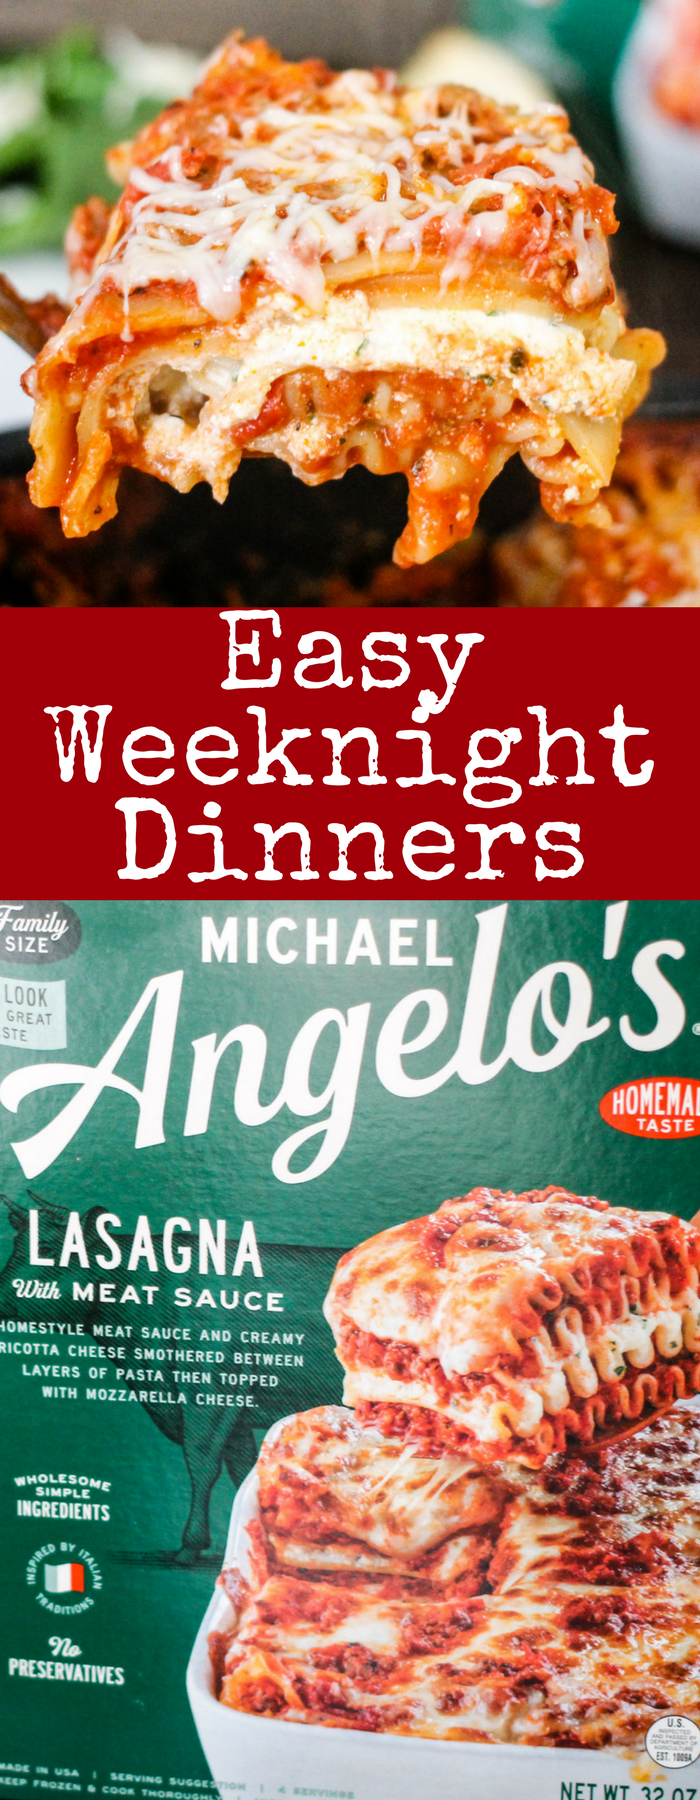 Quick, easy and delicious weeknight dinners with Michael Angelo's make your life SO much easier - just bake and serve! So yummy and the family will LOVE them!